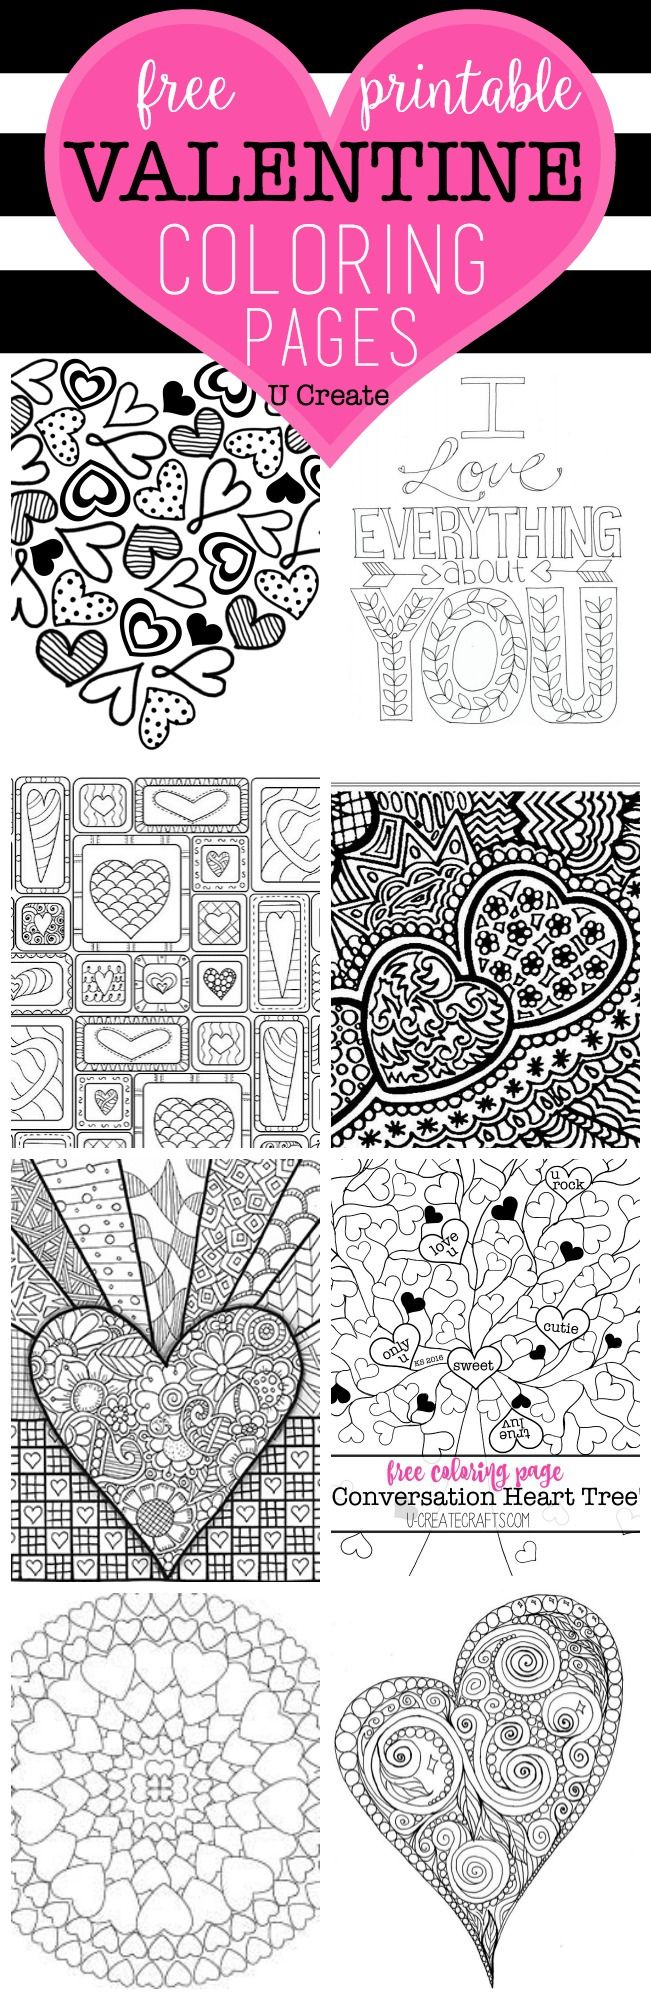 Free coloring pages creation - The Free Valentine Coloring Pages Are Here You Can T Walk Into A Store